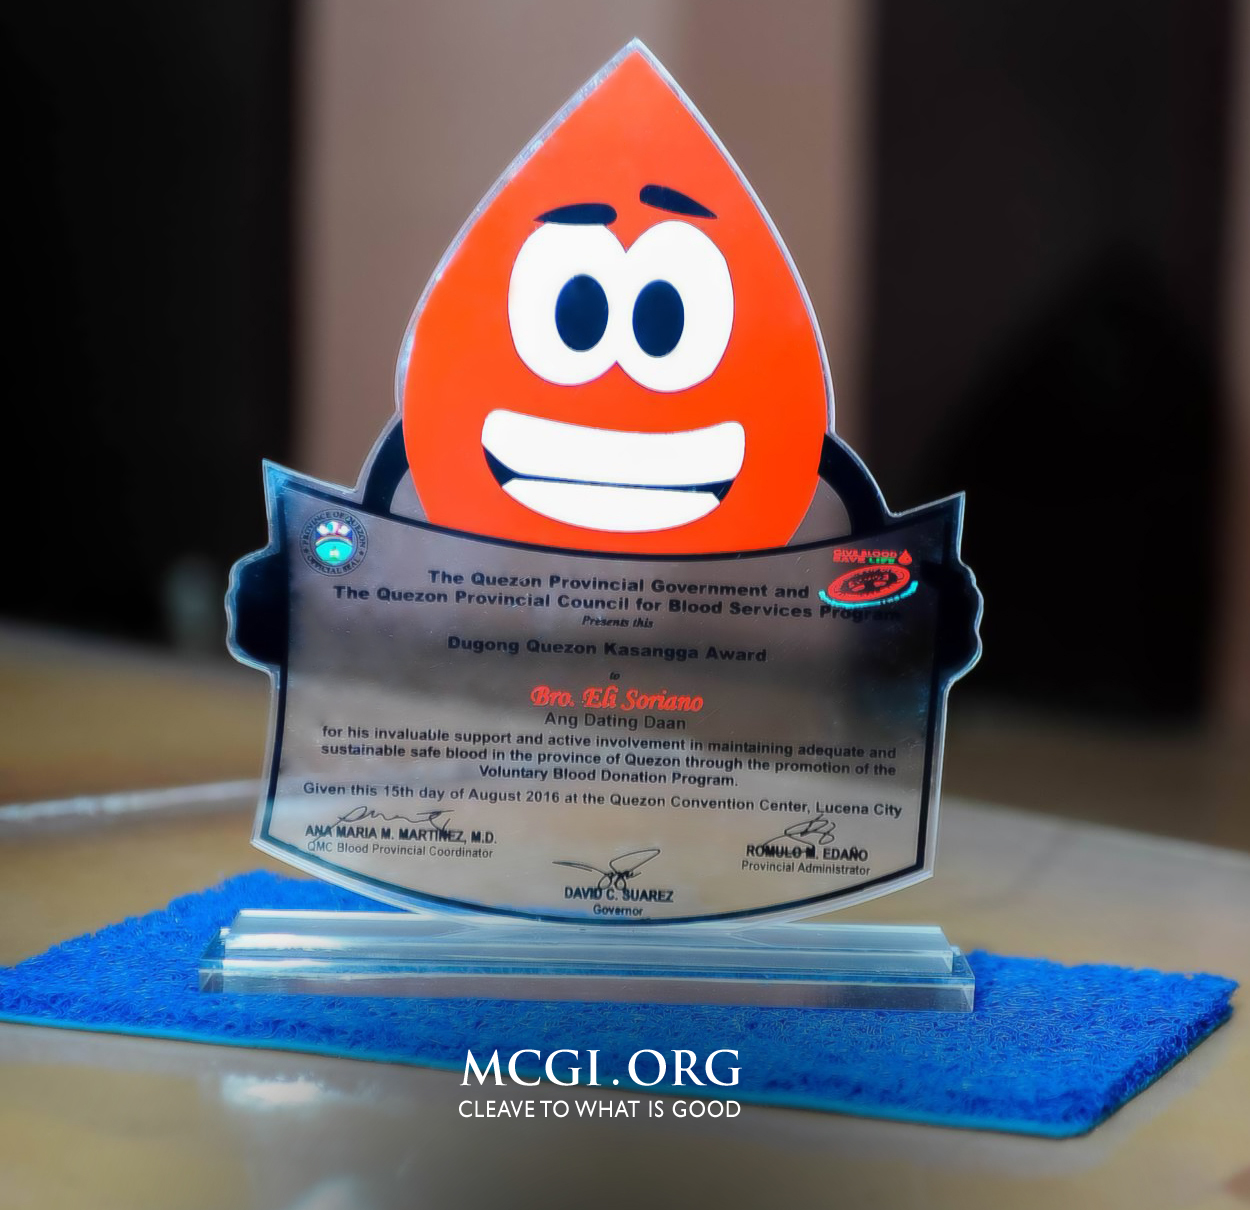 MCGI's Mass Blood Drive Advocacy Honored in First Dugong Quezon Awards